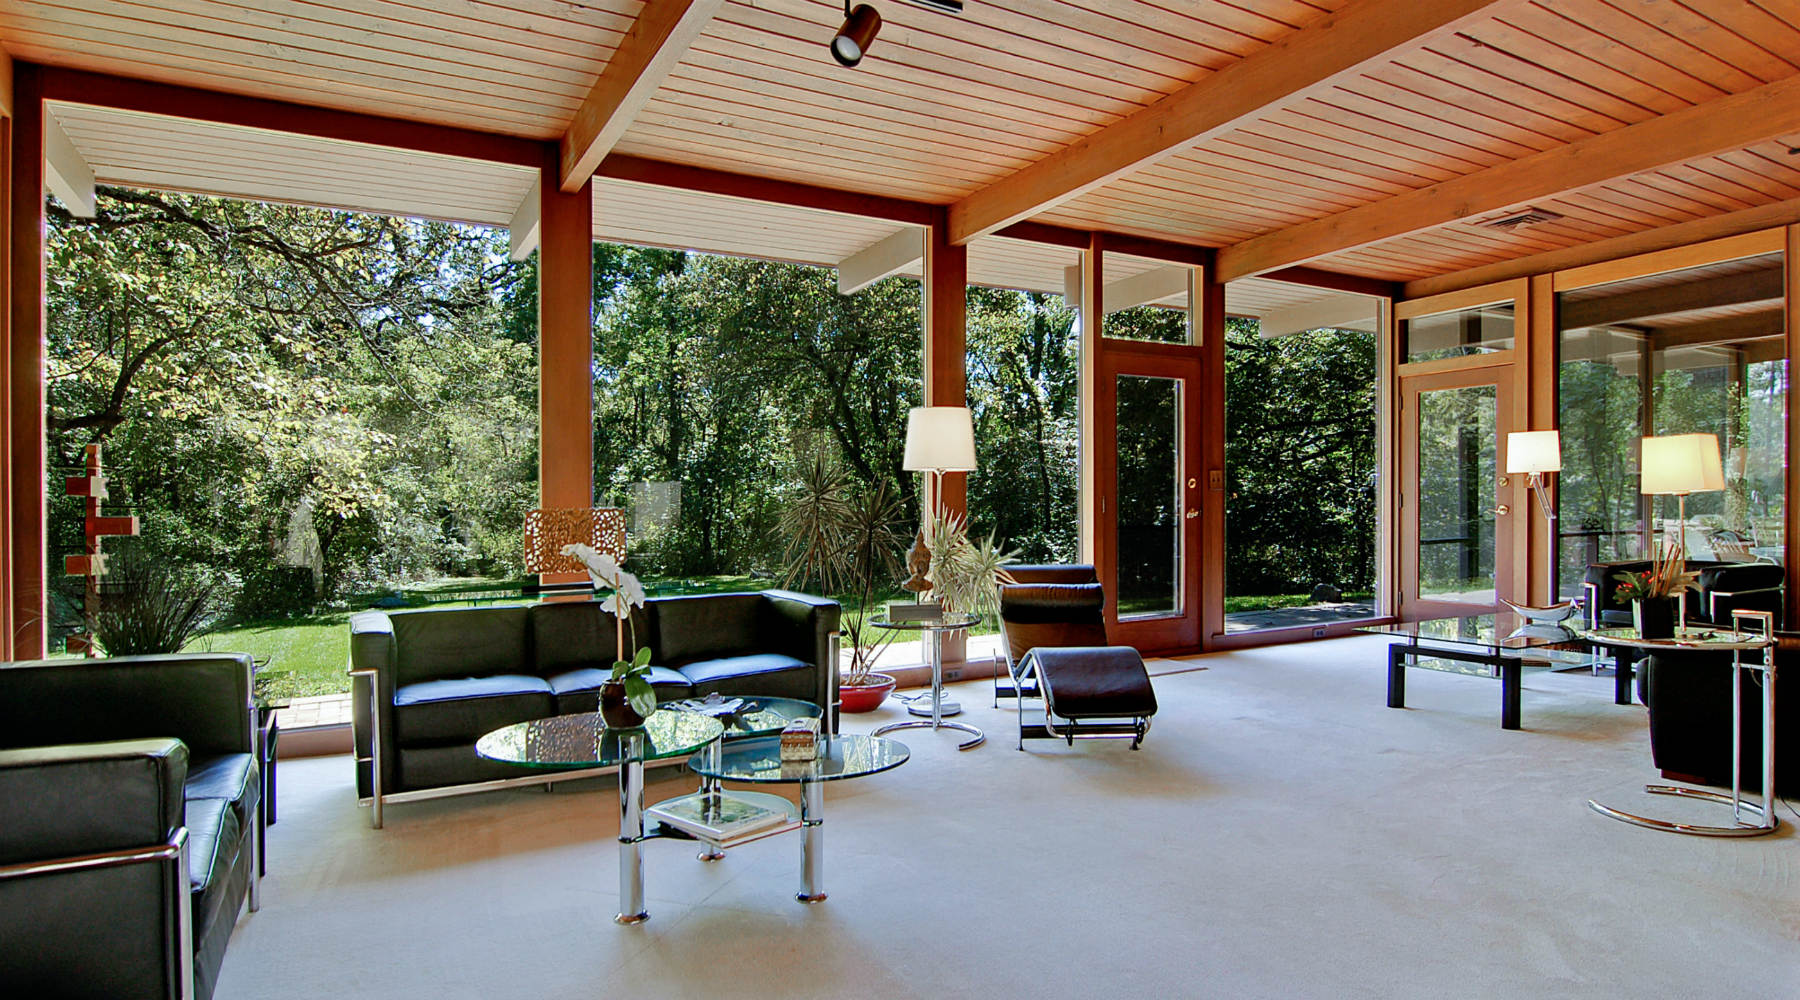 Mid century modern home with large windows